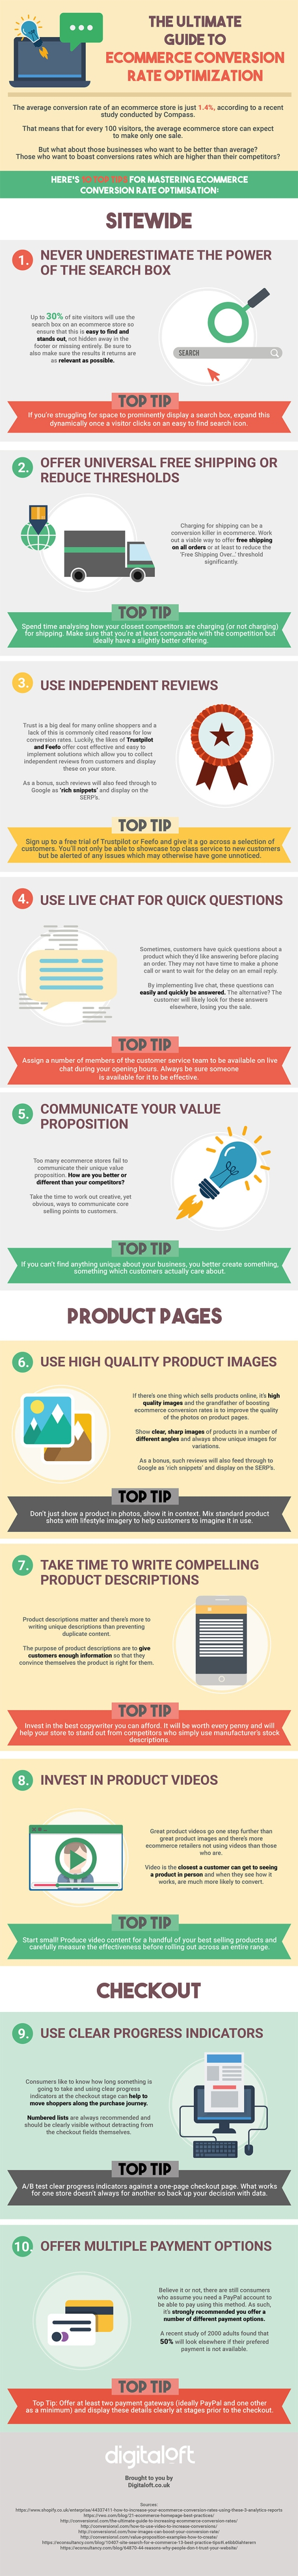 10-actionable-tips-for-a-more-effective-ecommerce-website